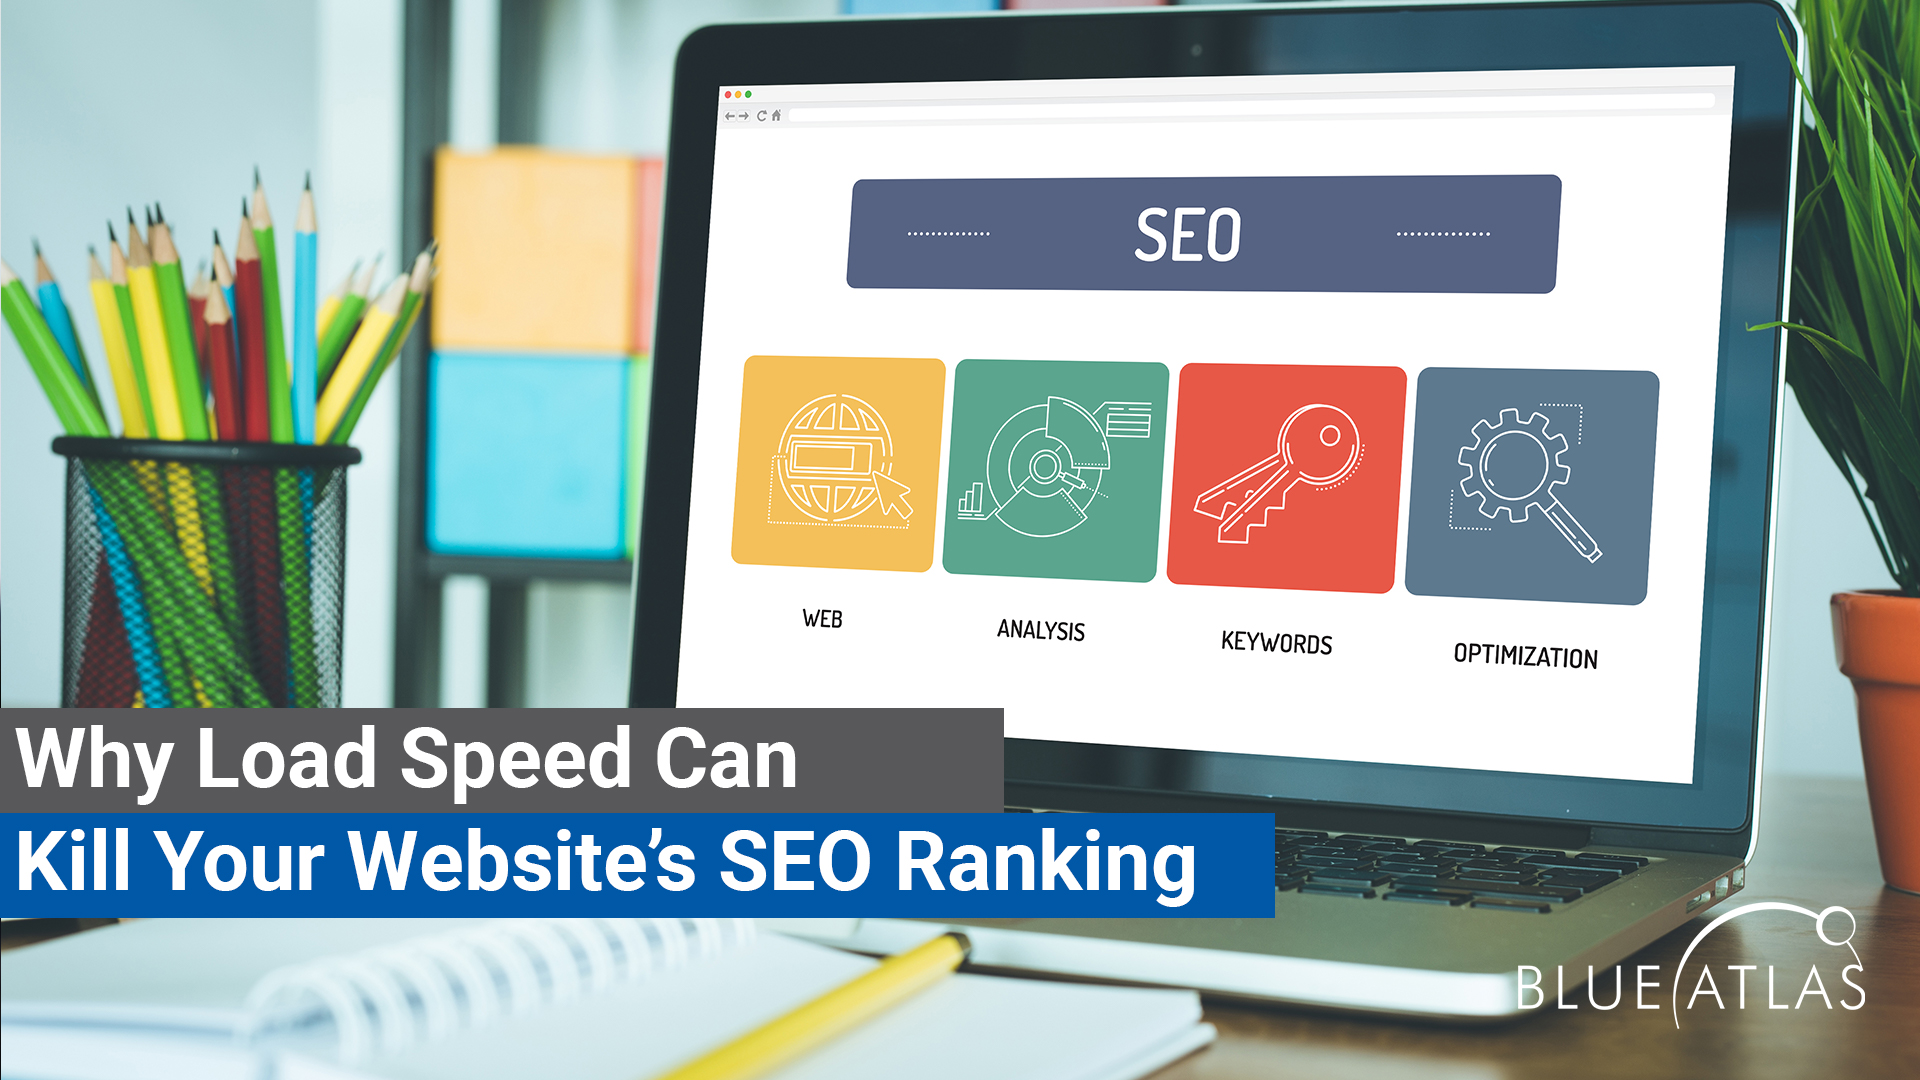 Why Load Speed Can Kill Your Websites SEO Ranking